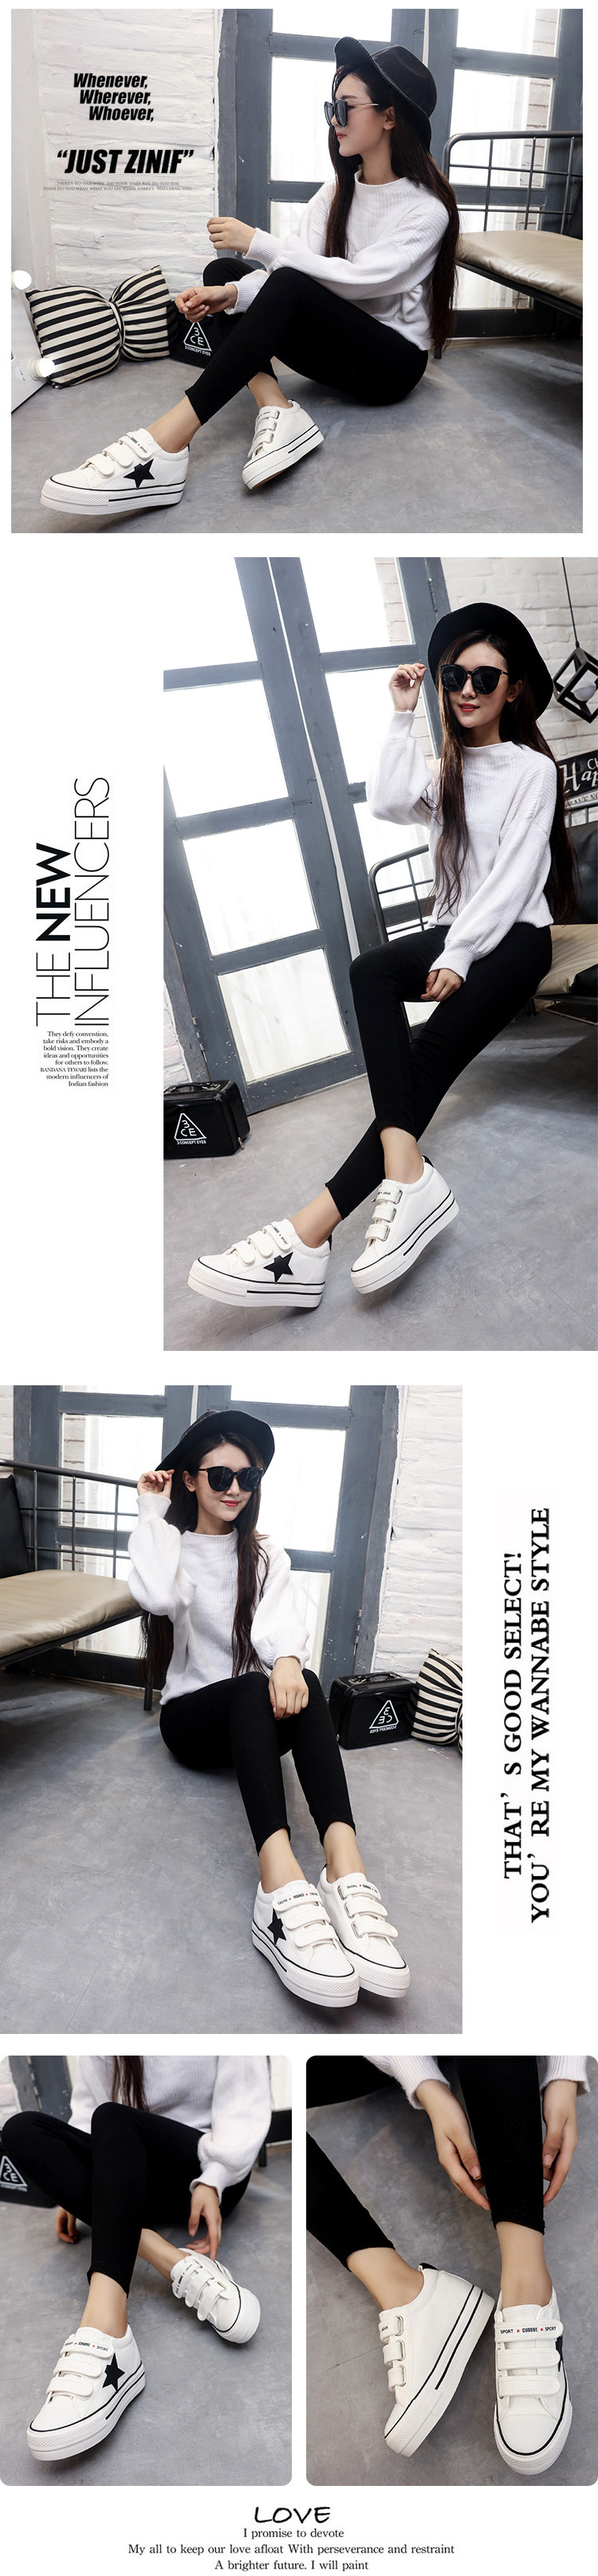 WOLF WHO Canvas Creeper Platform Sneakers Women Shoes Krasovki Ladies Female Footwear Tenis Feminino Casual Basket Femme H-105 3